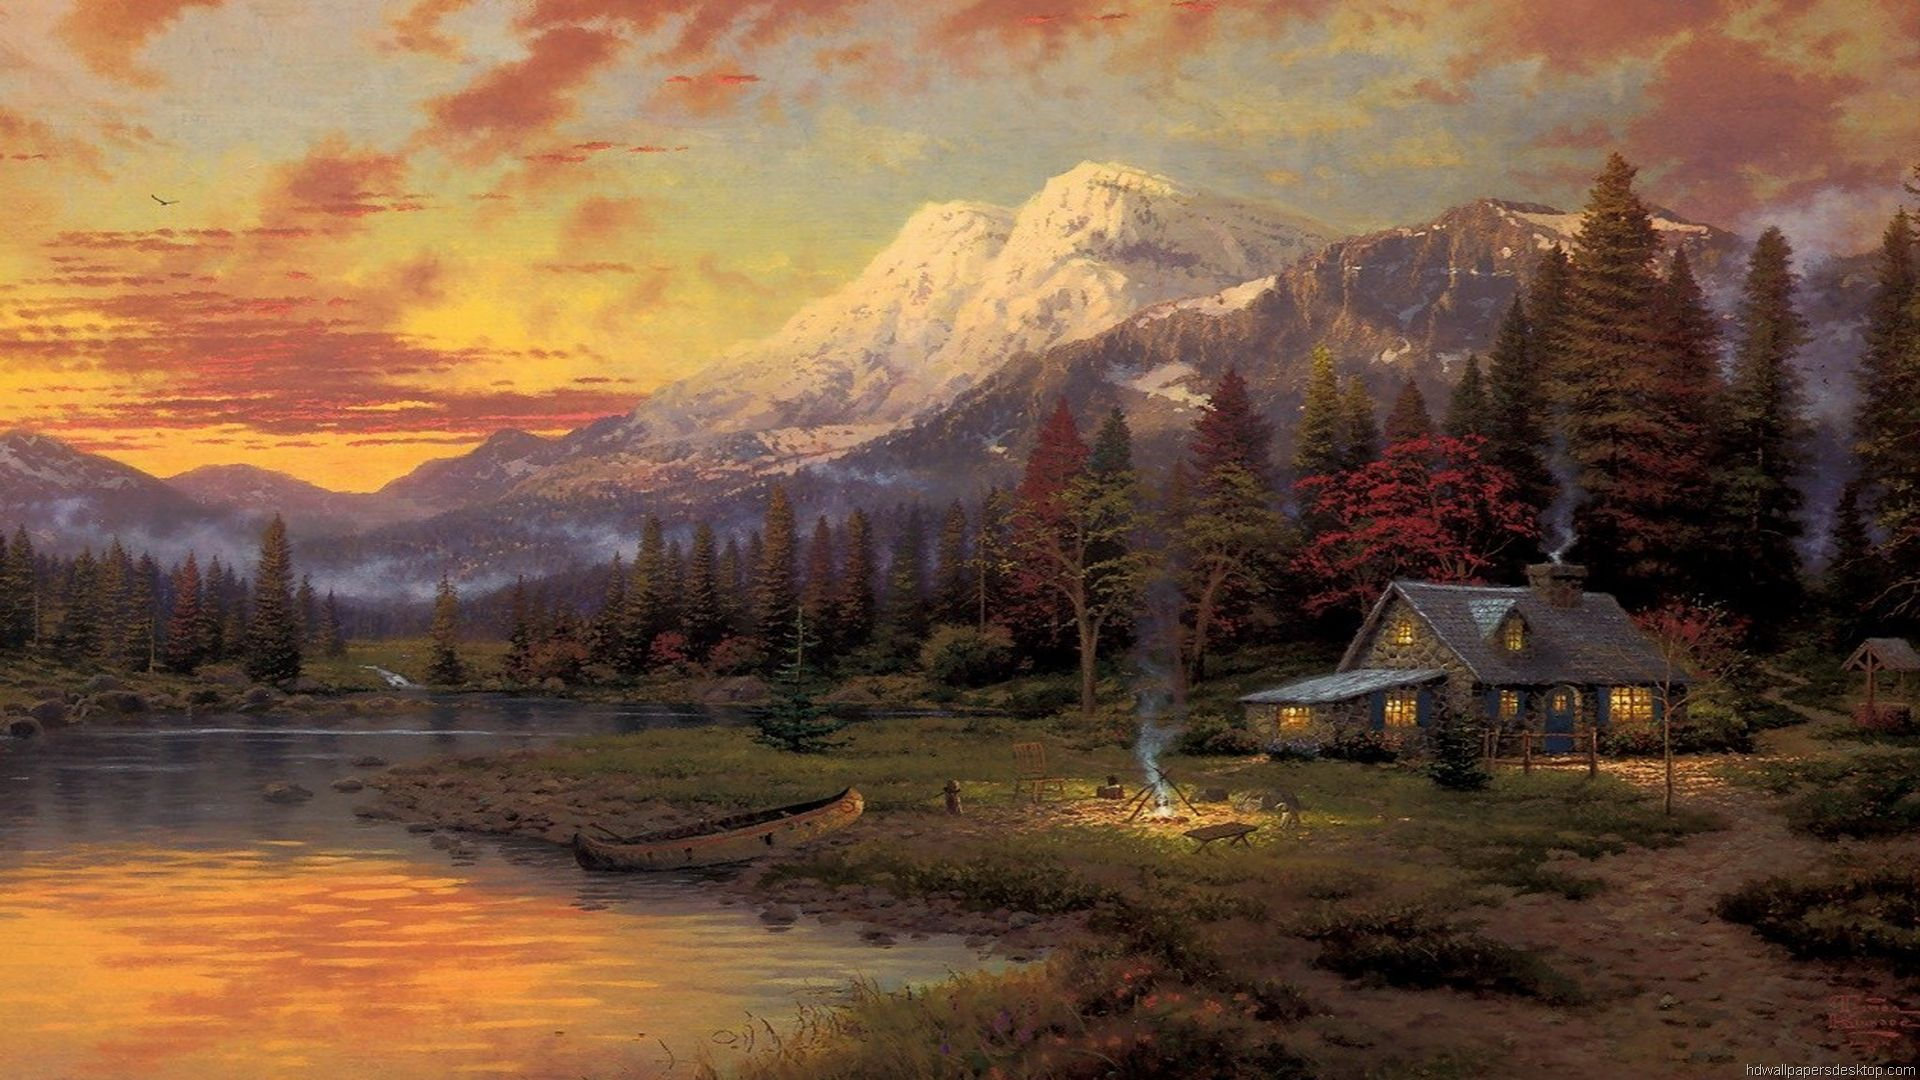 thomas kinkade paintings Thomas Kinkade Wallpaper